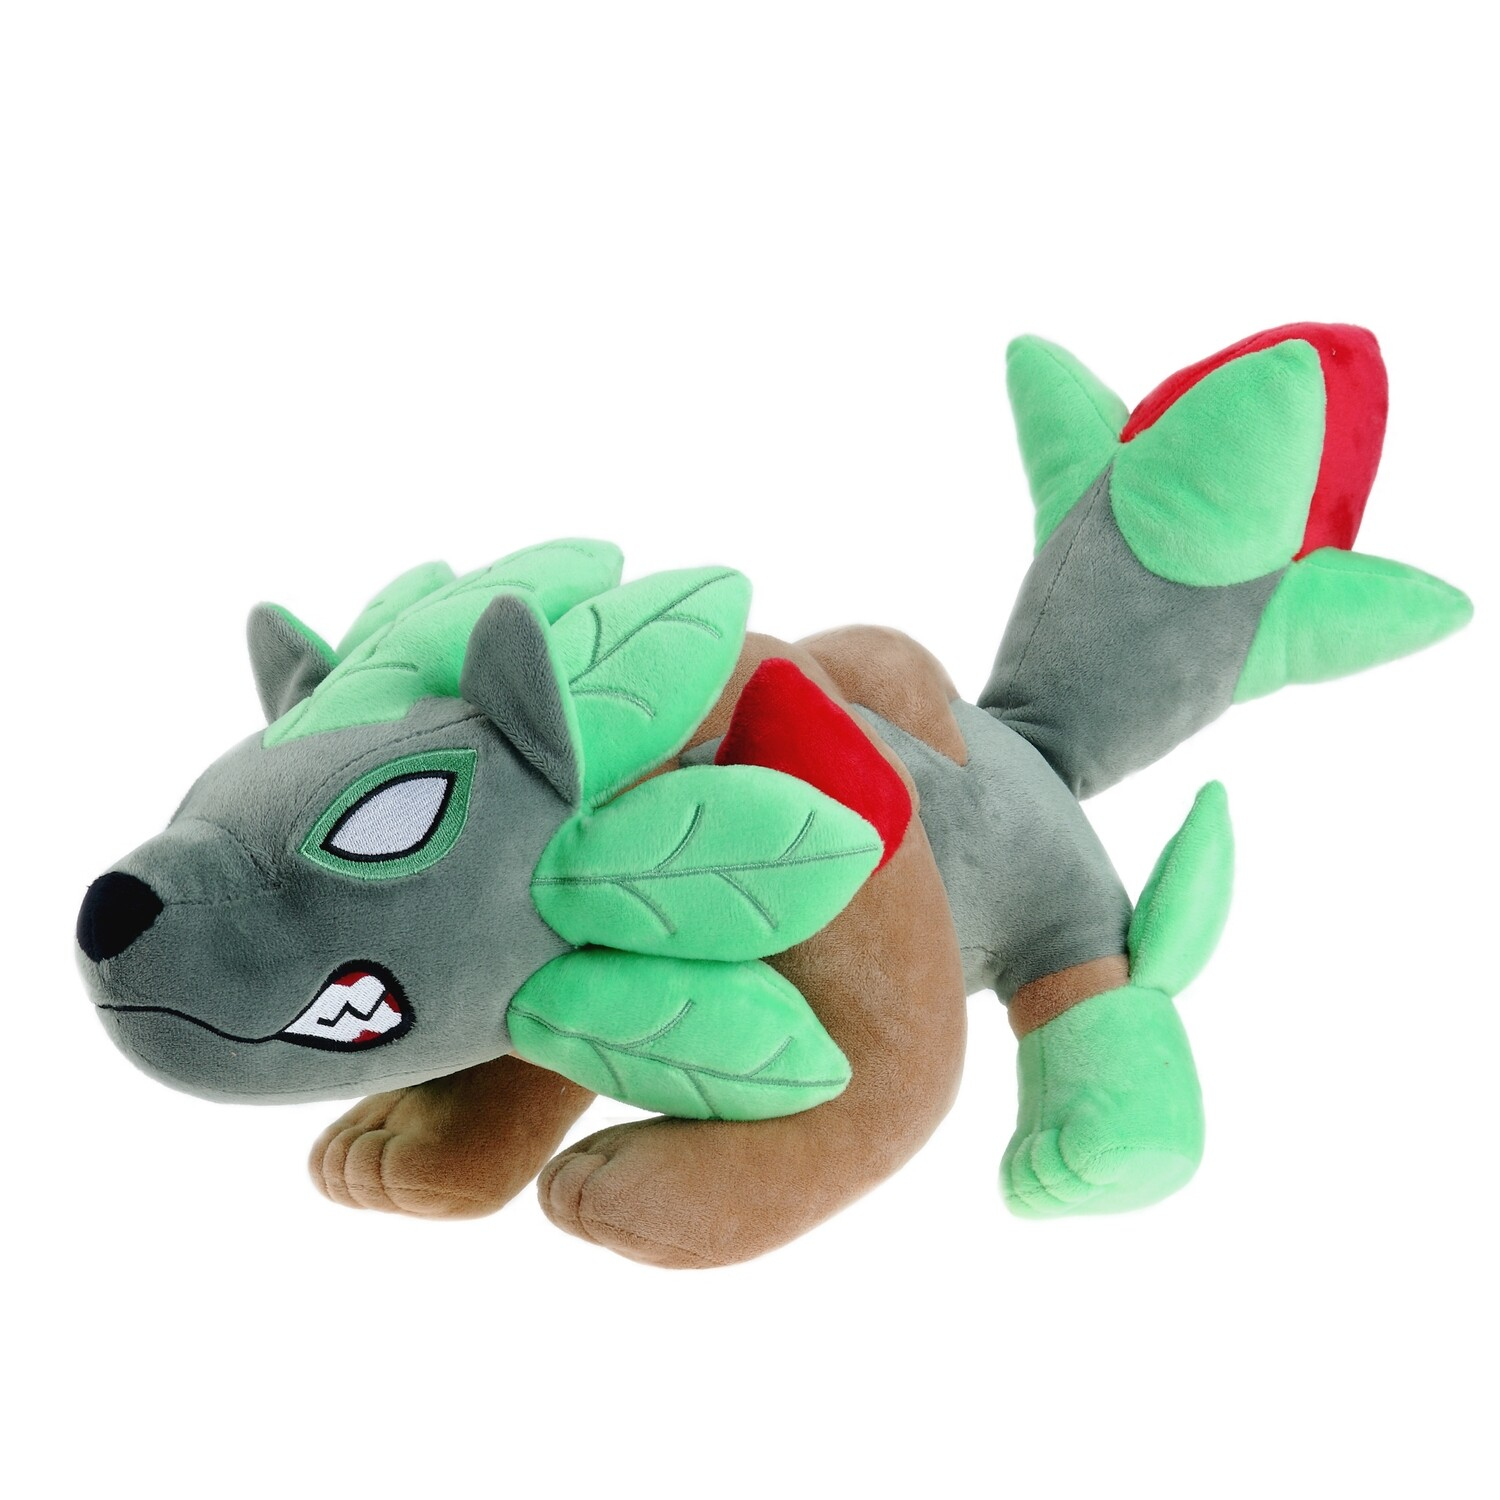 Rivals of Aether: Sylvanos Plush and Pin with Golden Skin Code